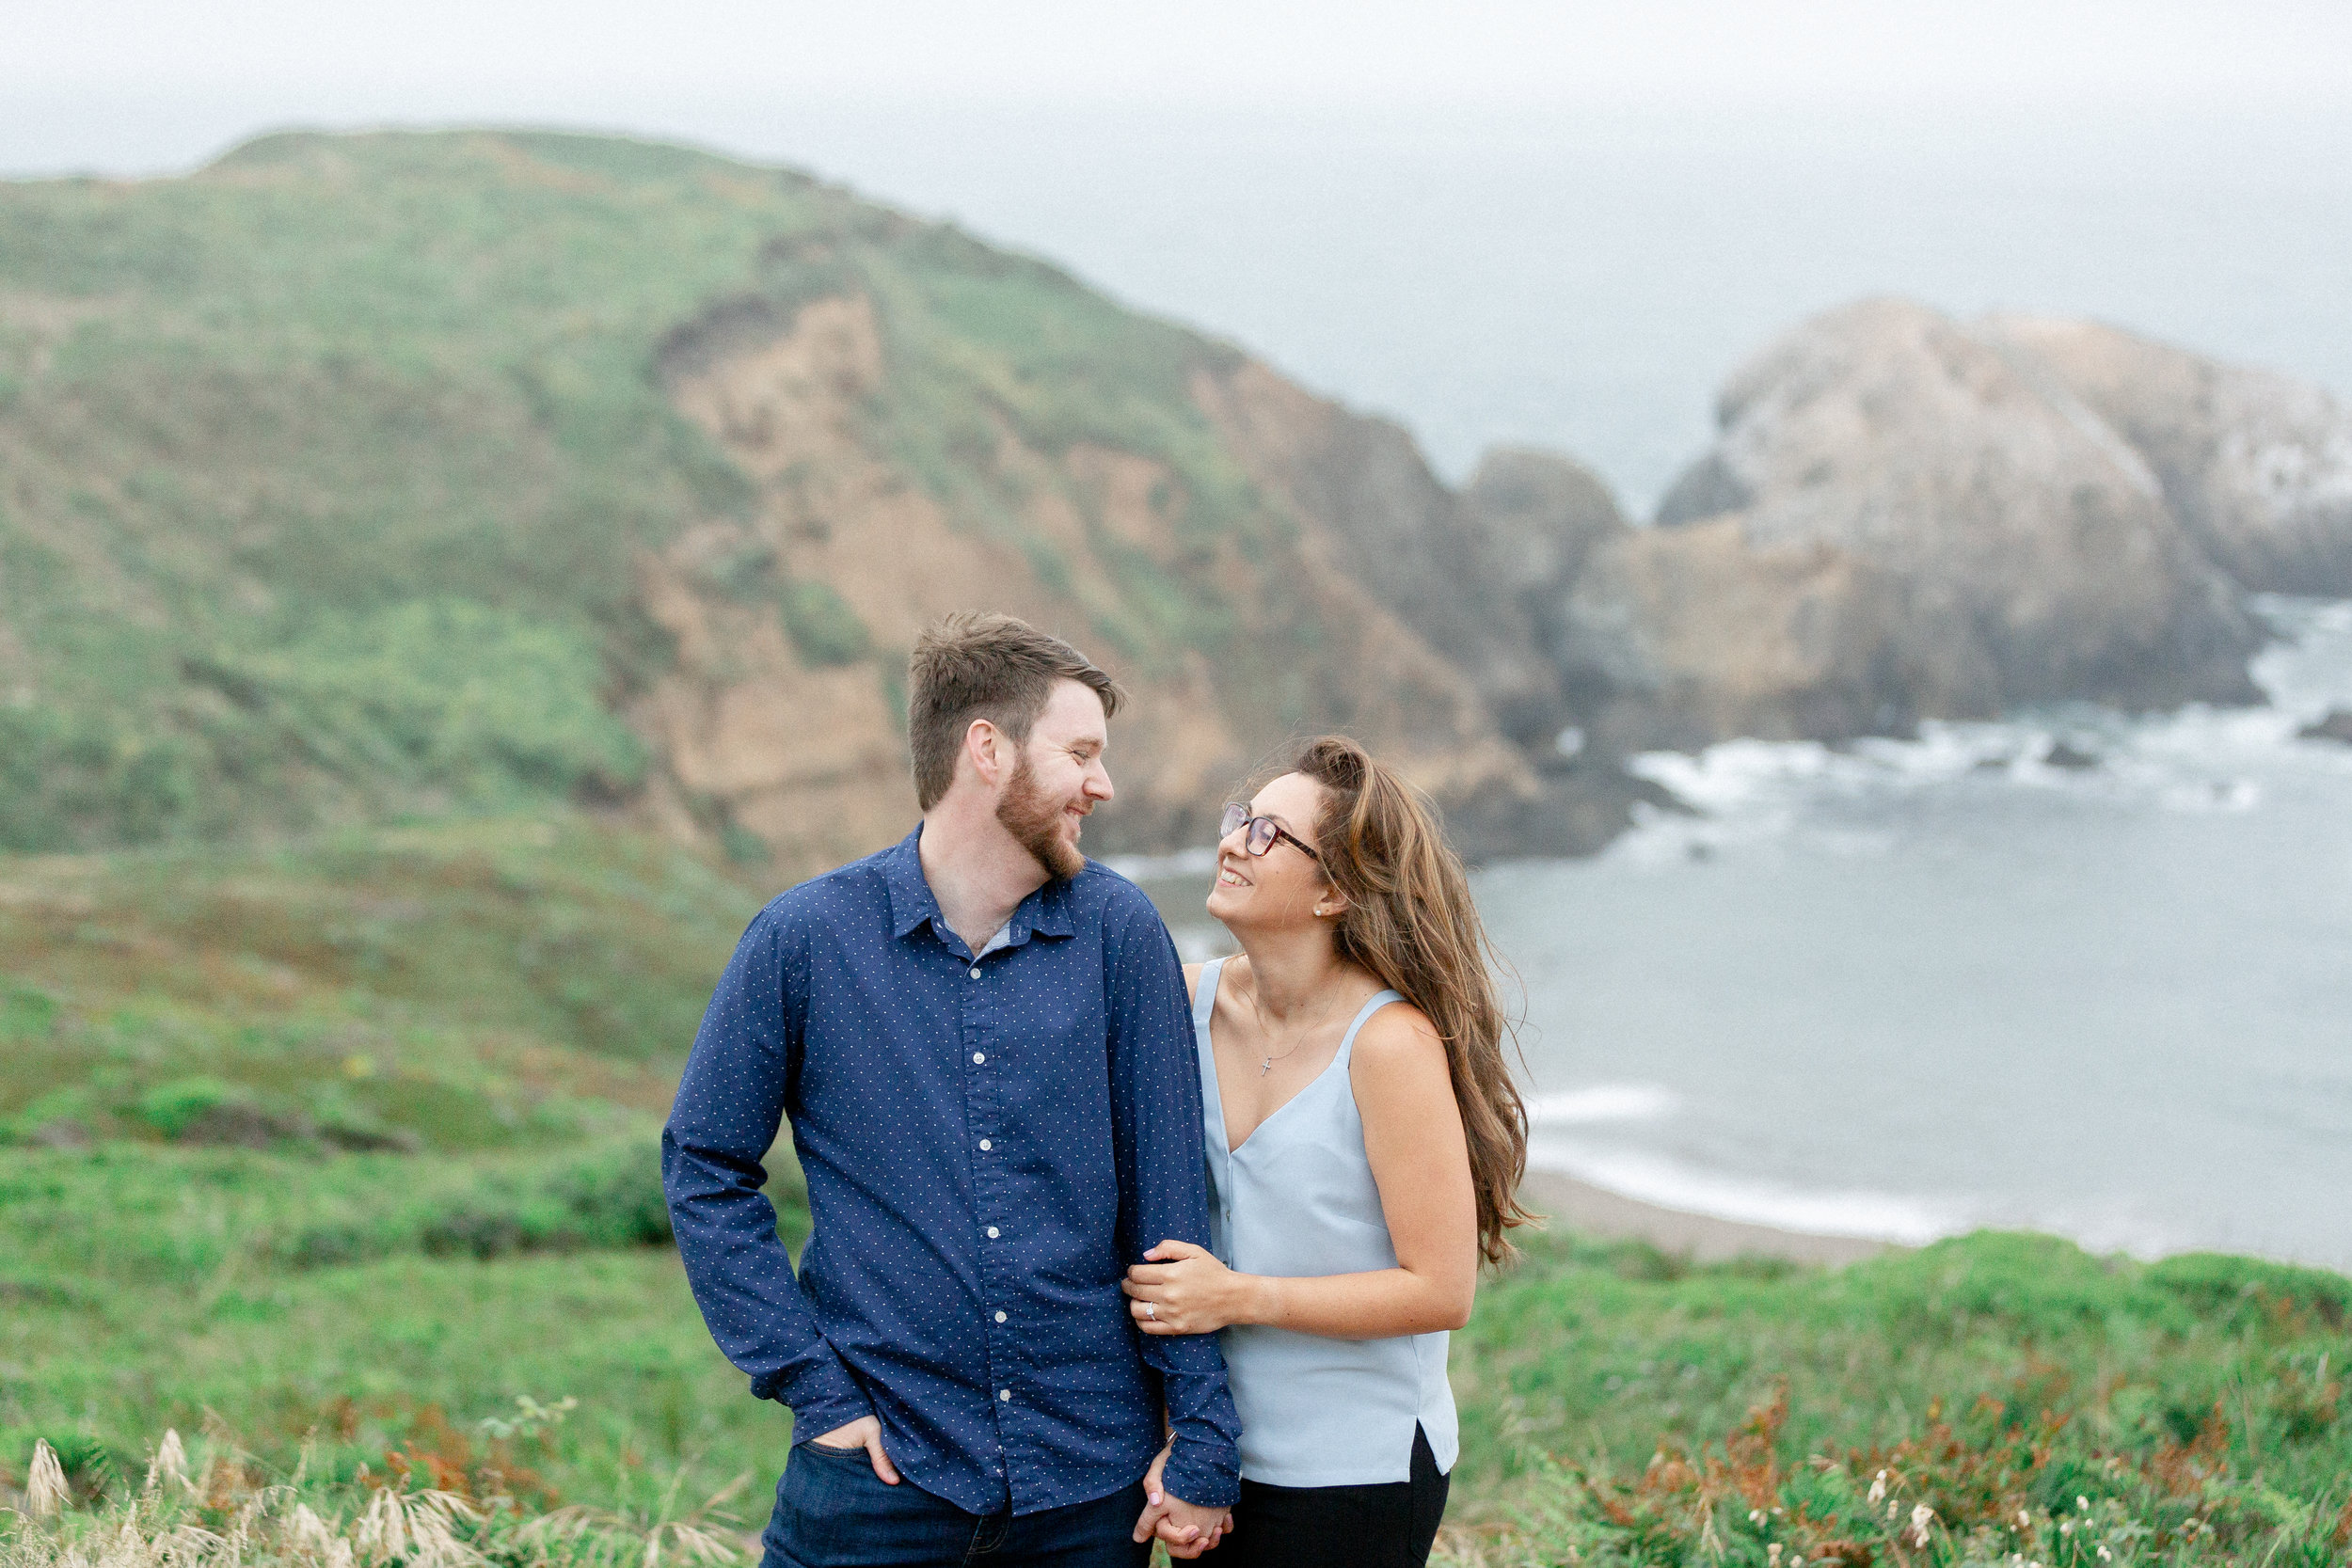 San-Francisco-Lovers-Lane-Engagement-Photographer-143.jpg